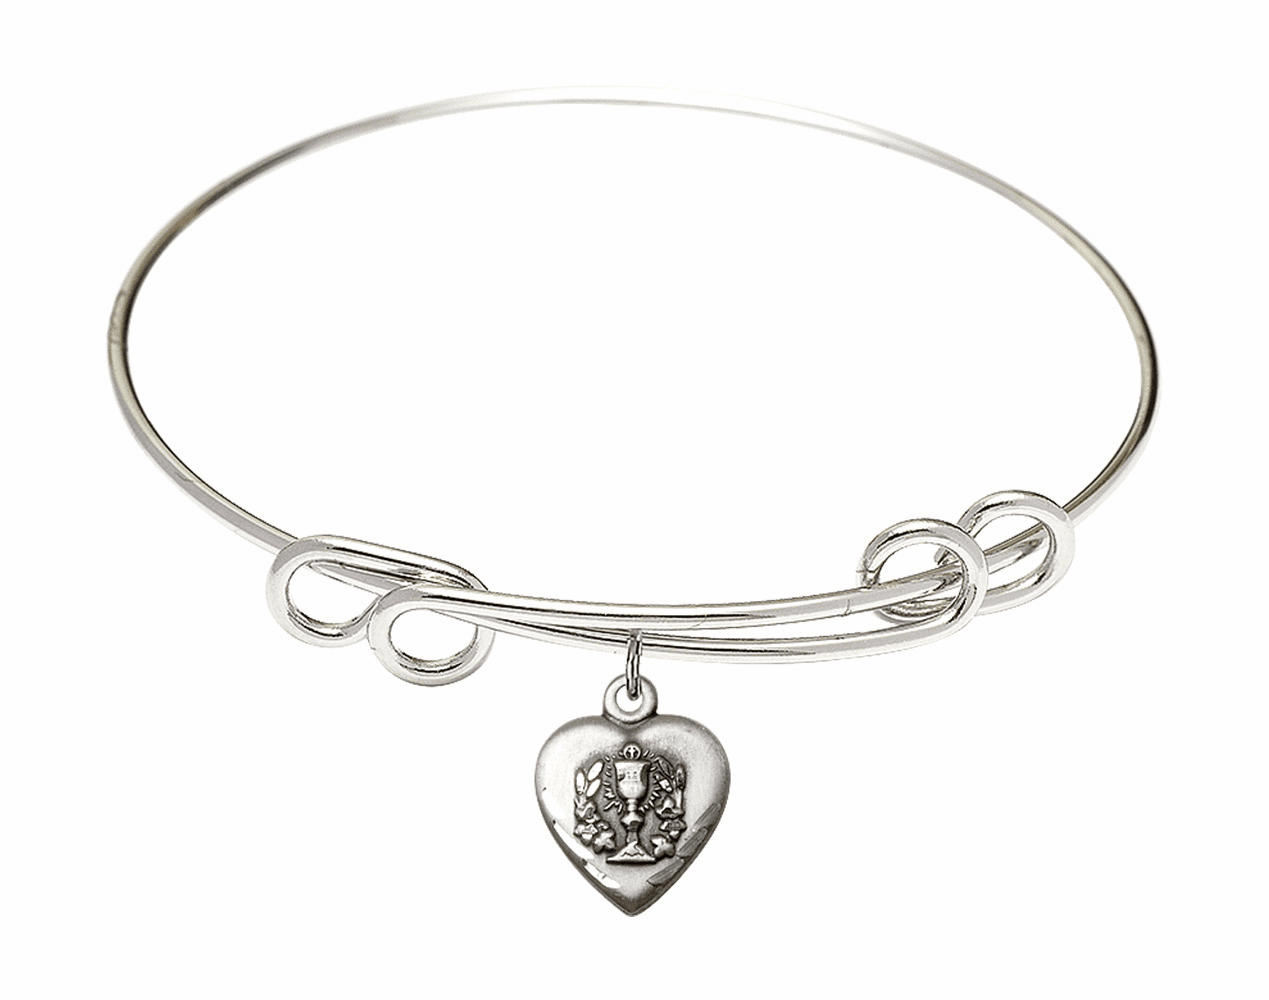 Round Double Loop Bangle Bracelet w/Communion Heart Sterling Silver Charm by Bliss Mfg